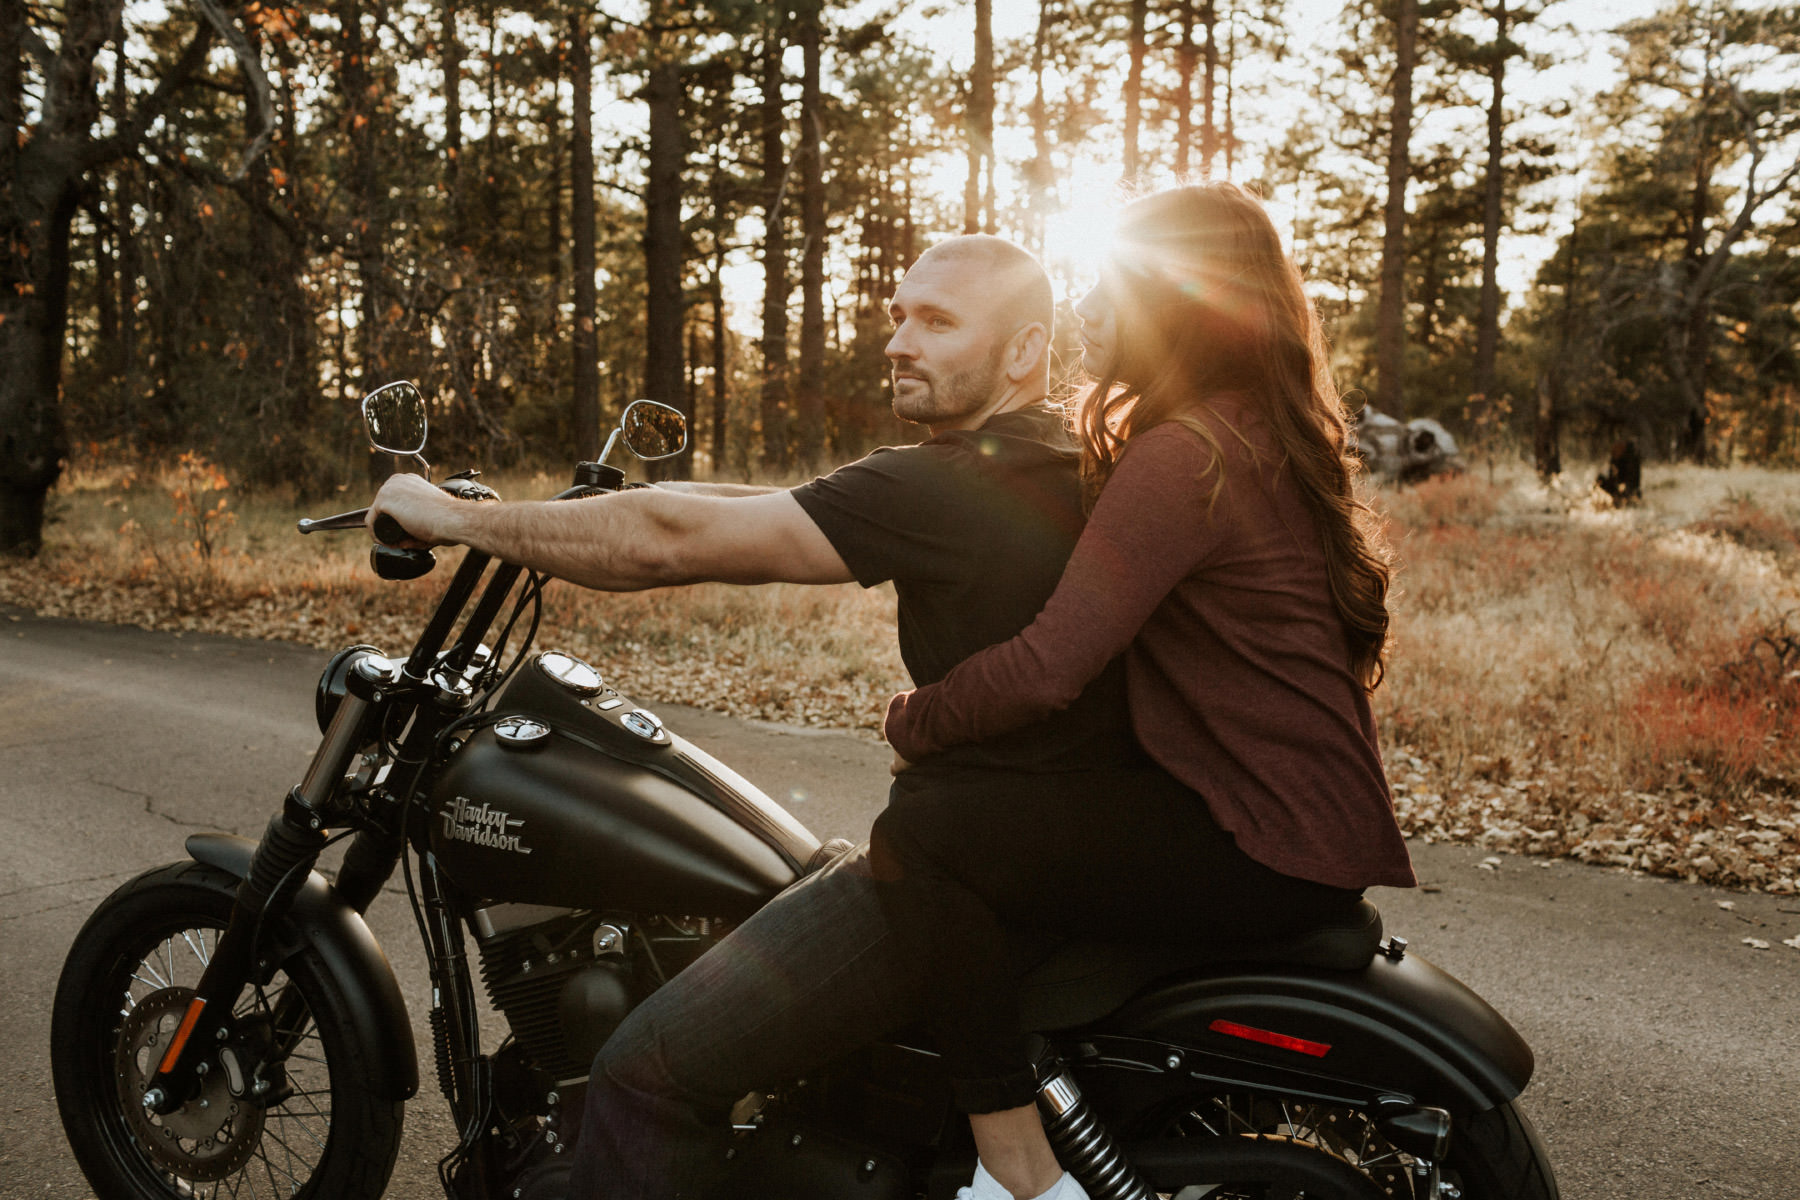 Motorcycle couple in the forest